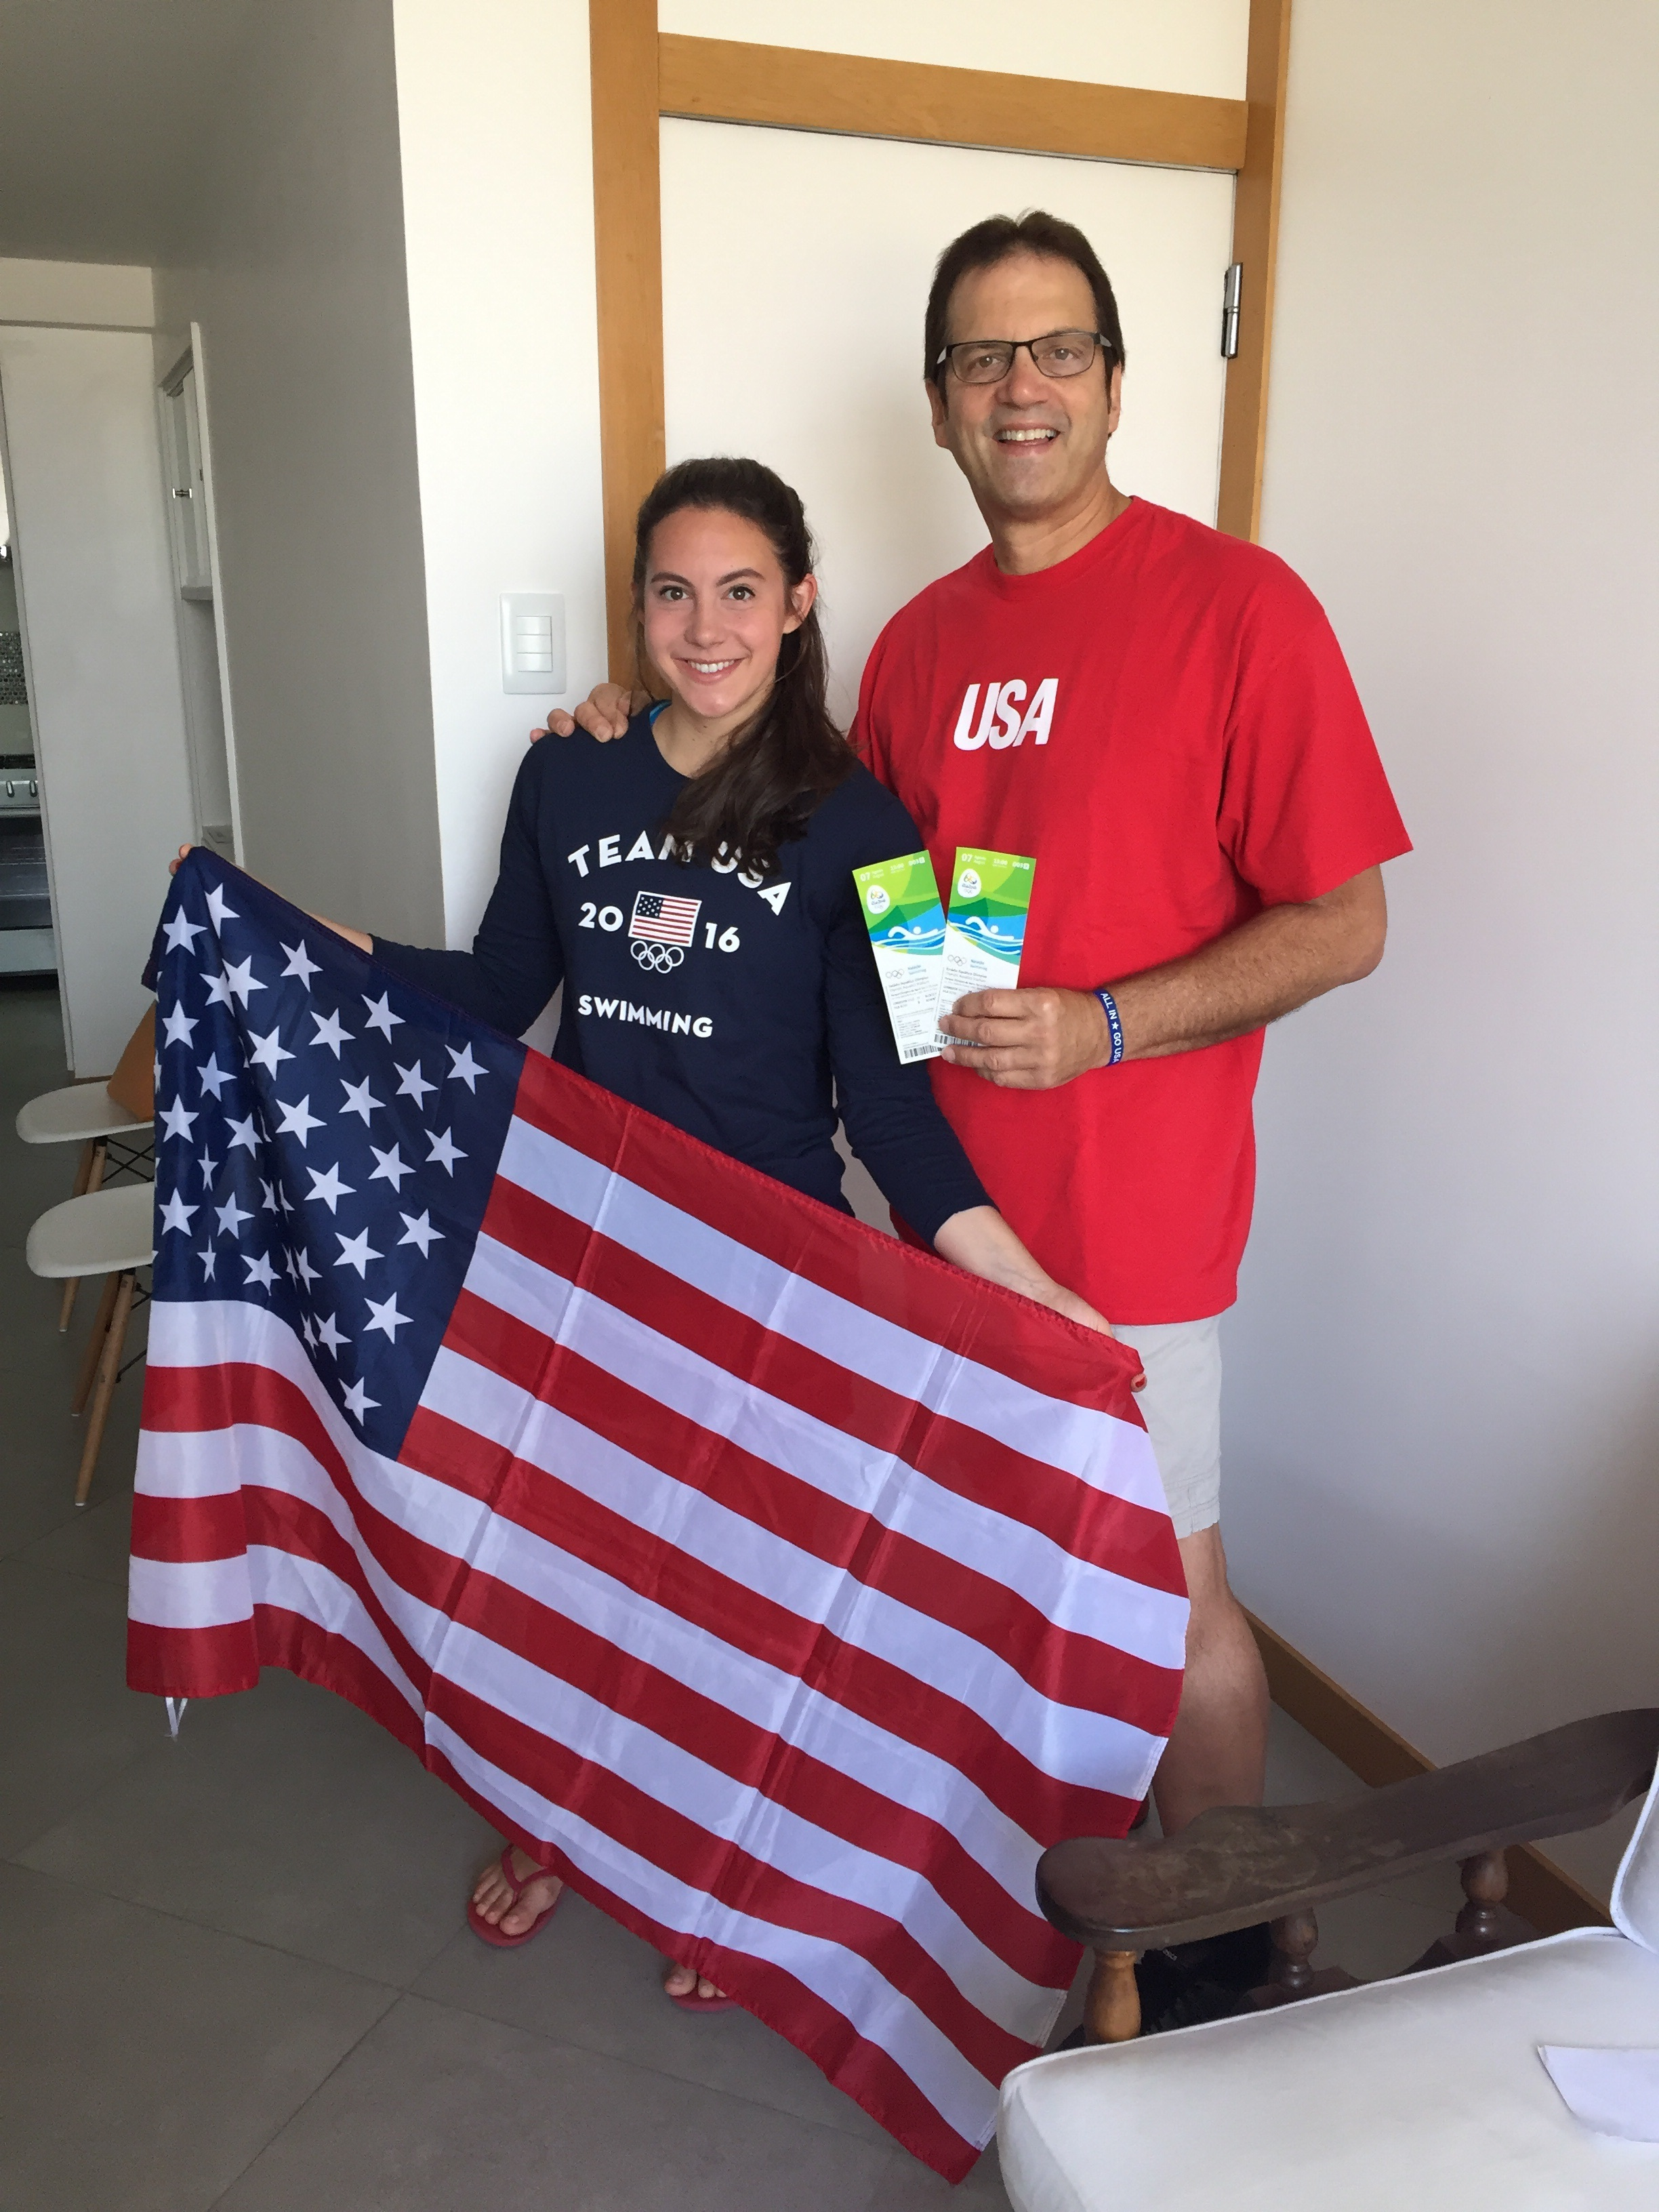 Tickets and American Flag in hand...off to an Olympic Swimming Event